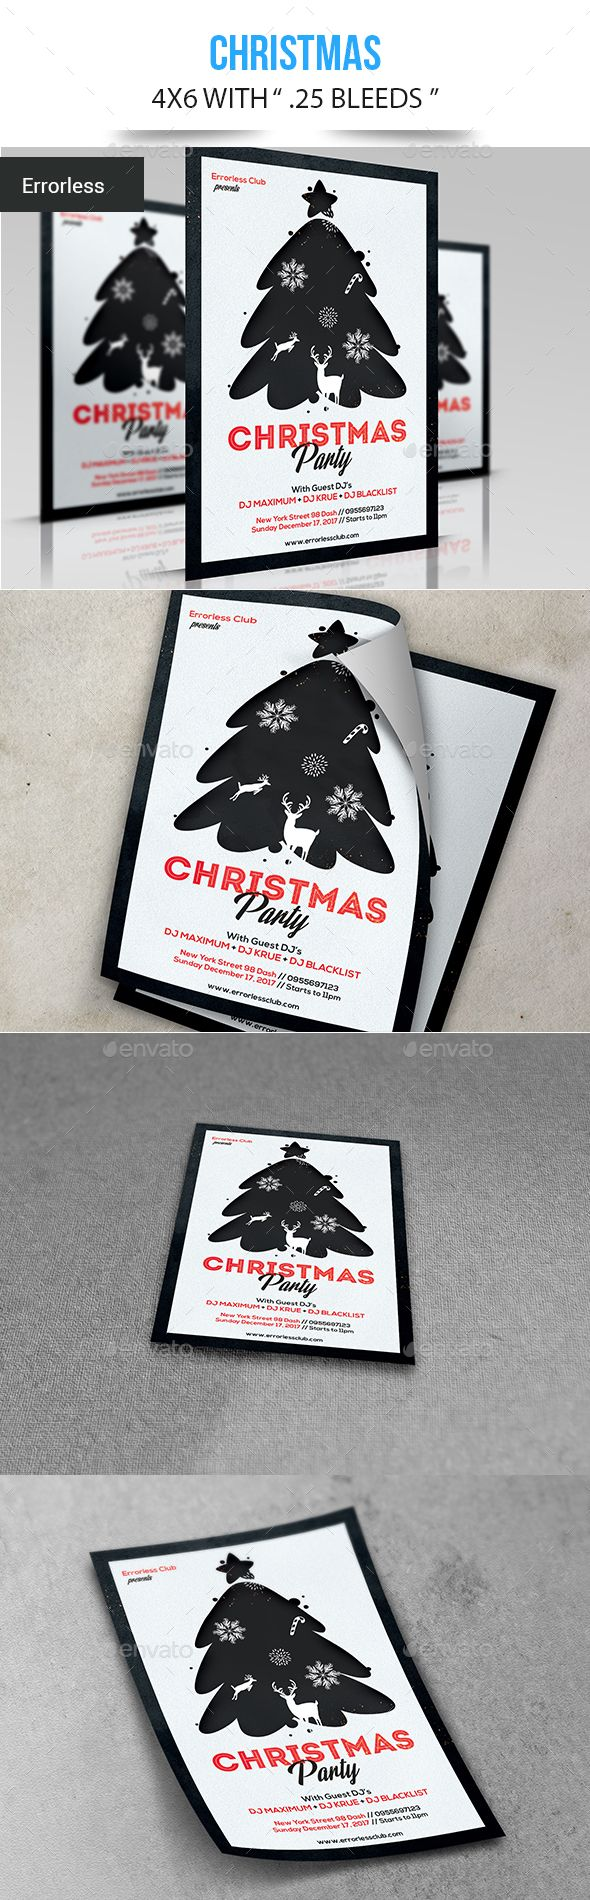 #Christmas - #Events Flyers